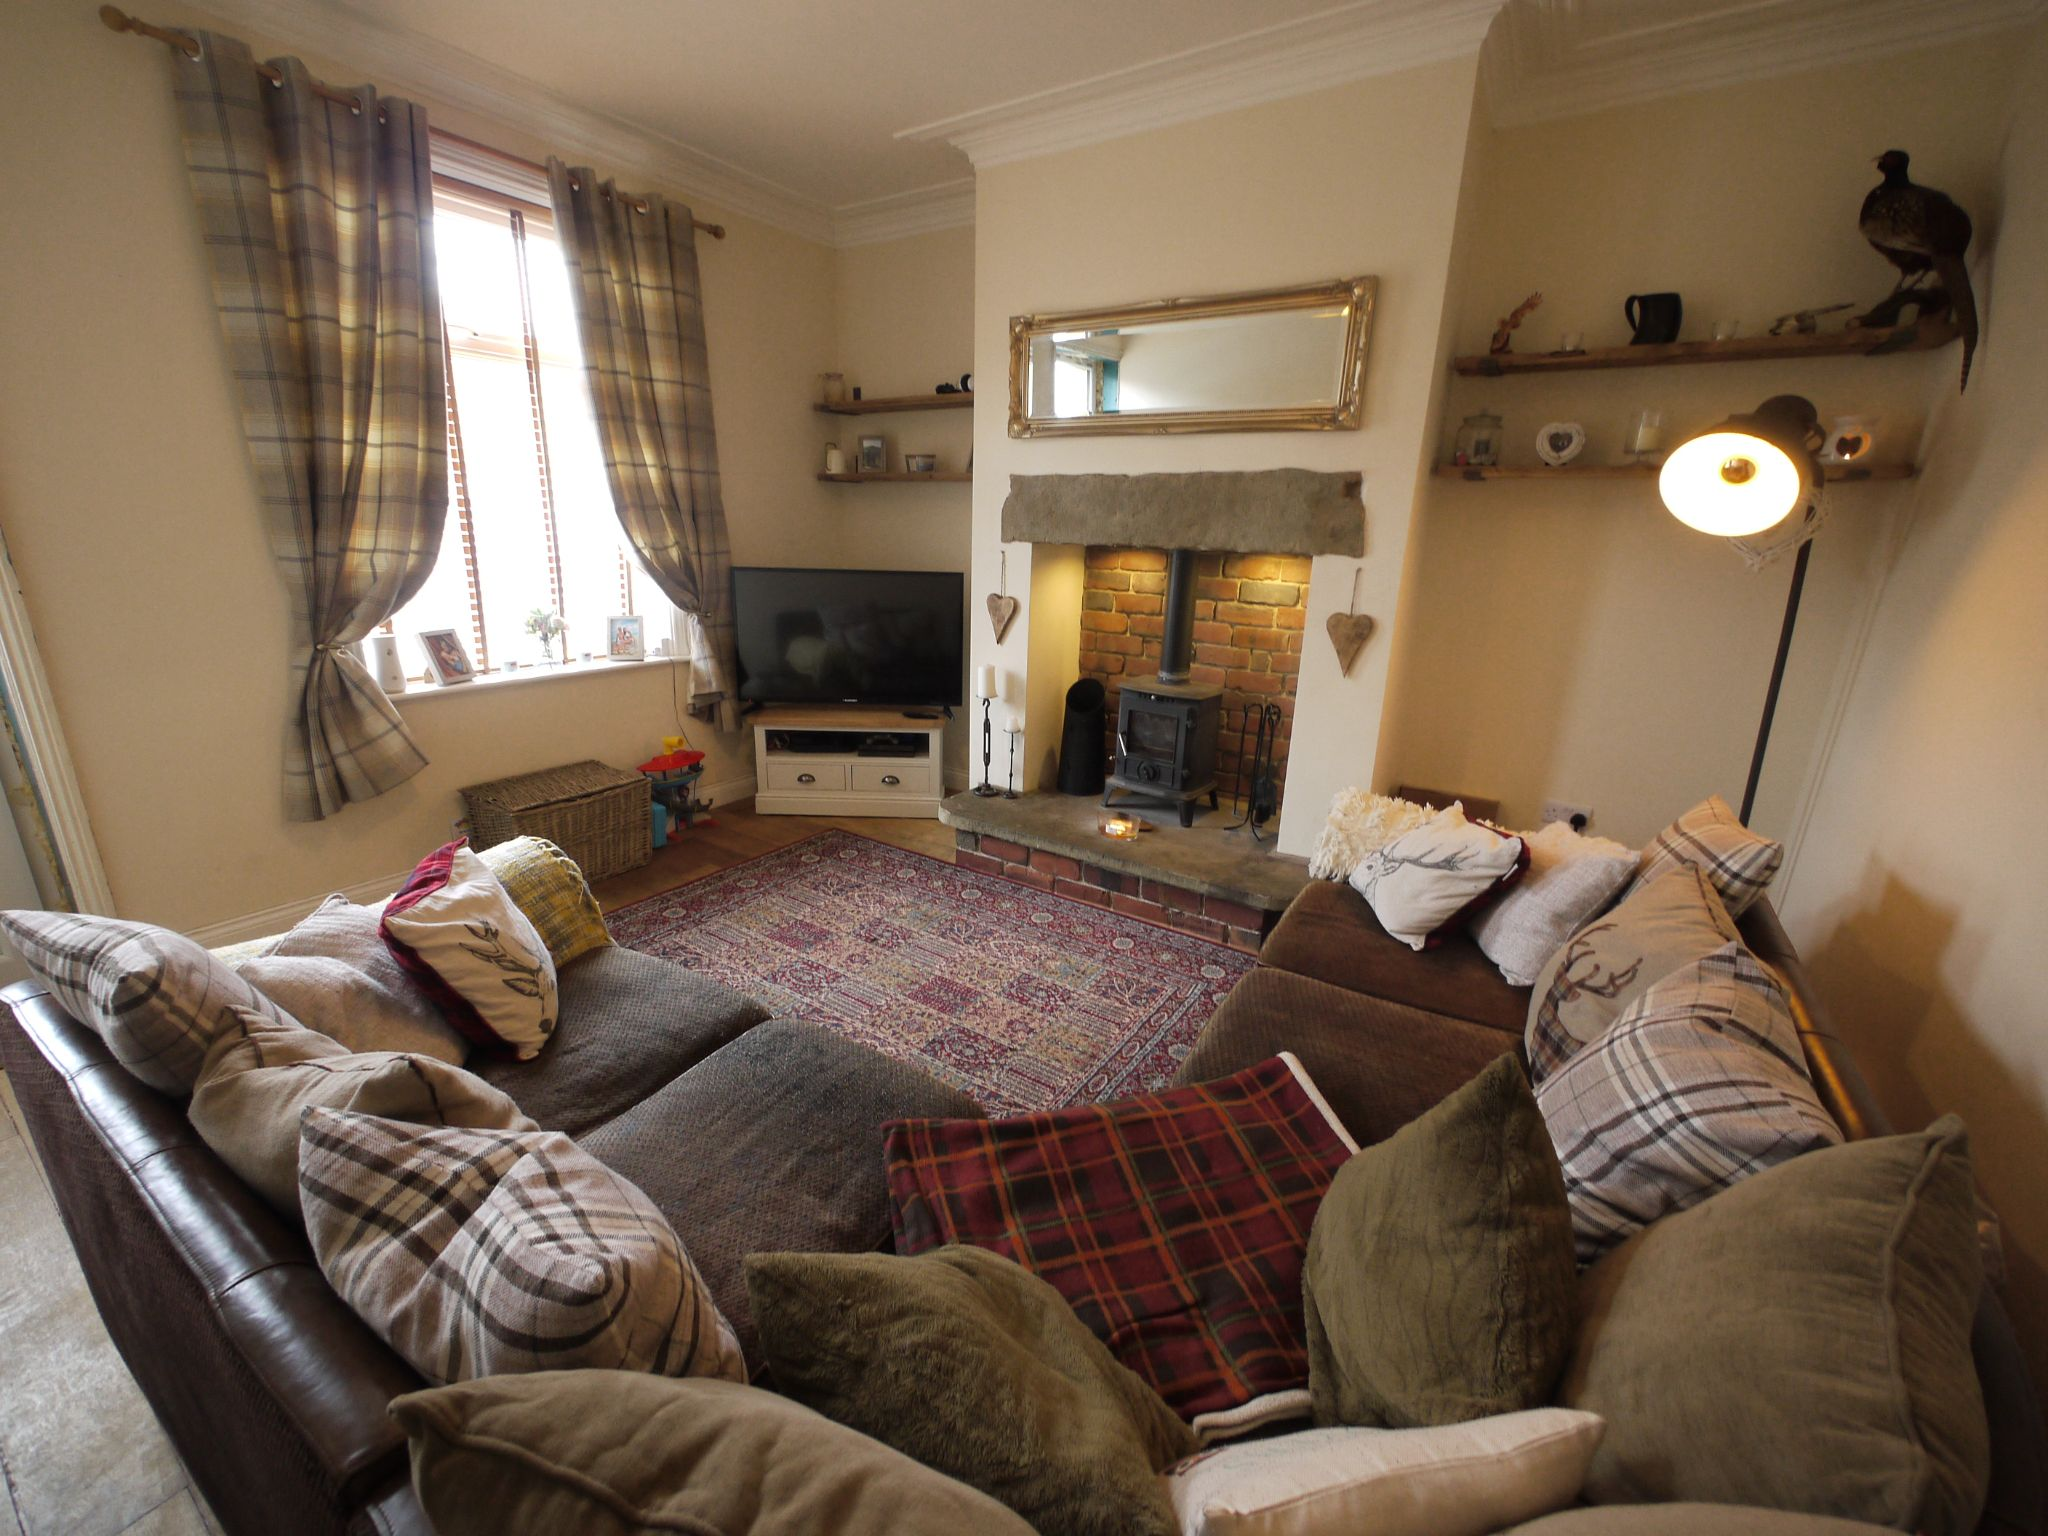 2 bedroom mid terraced house SSTC in Brighouse - Lounge 2.